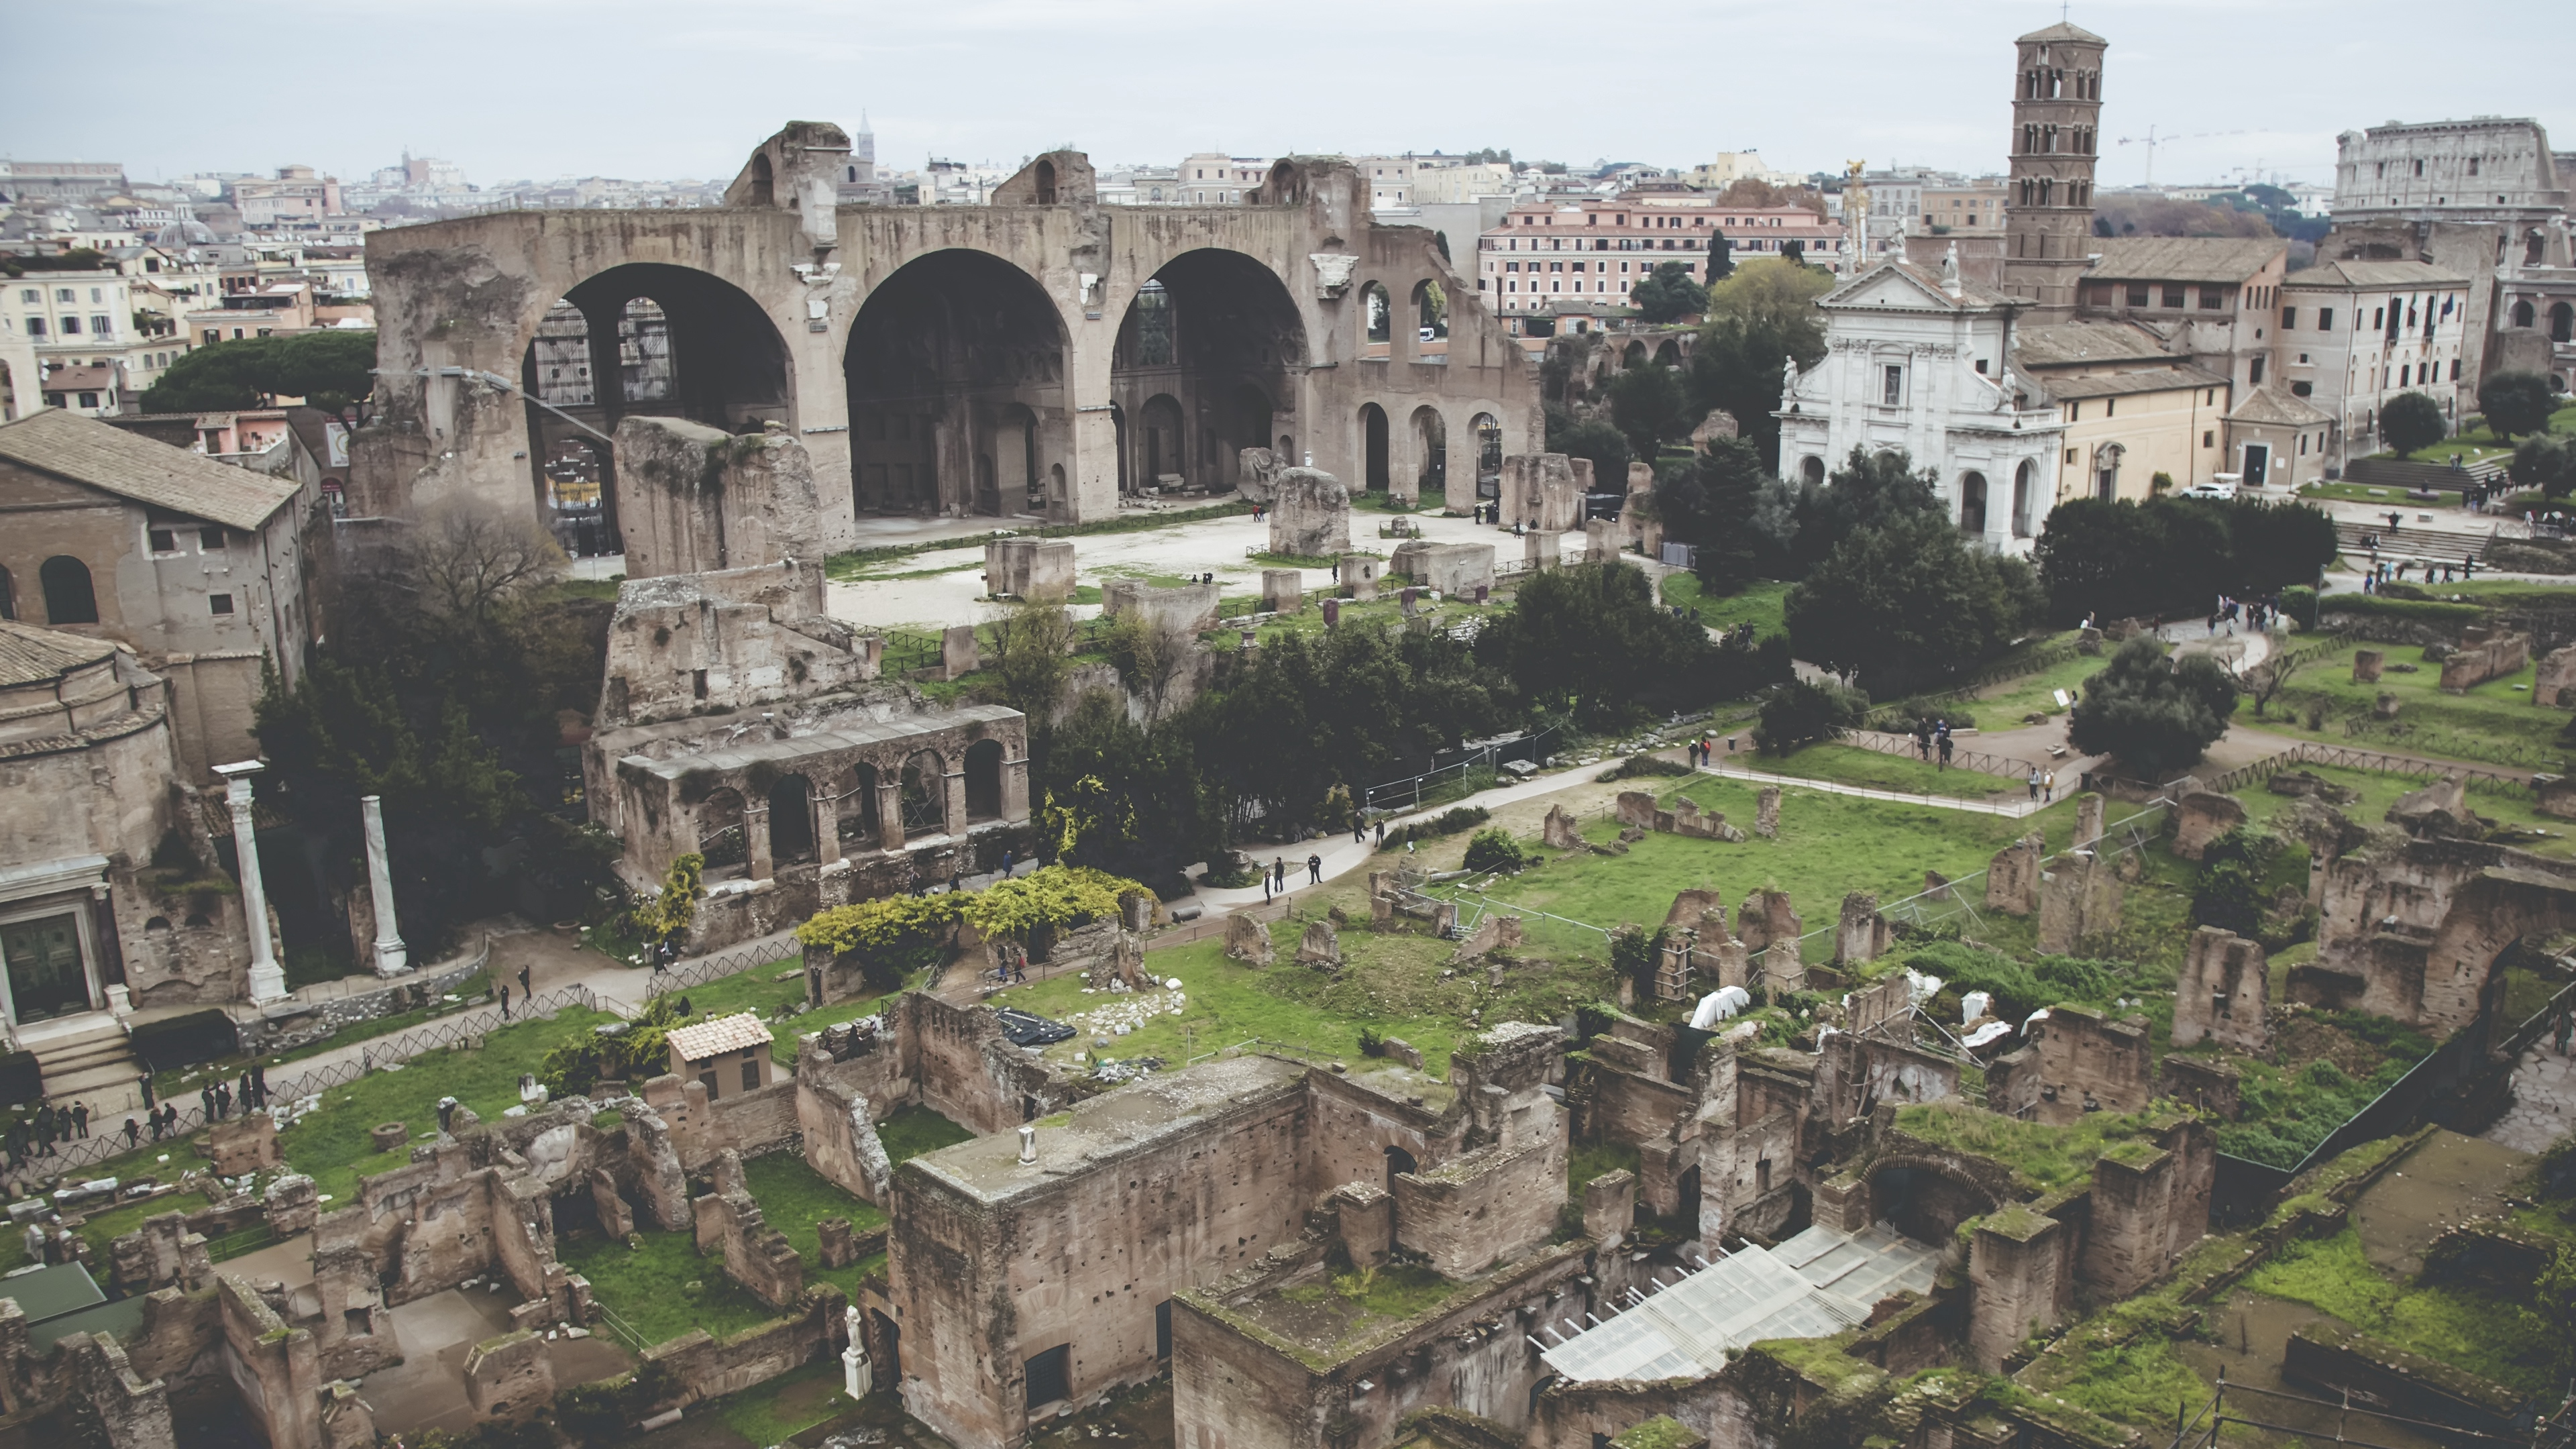 ancient city colosseum rome ruins 4k 1538064995 - ancient city, colosseum, rome, ruins 4k - Rome, Colosseum, ancient city